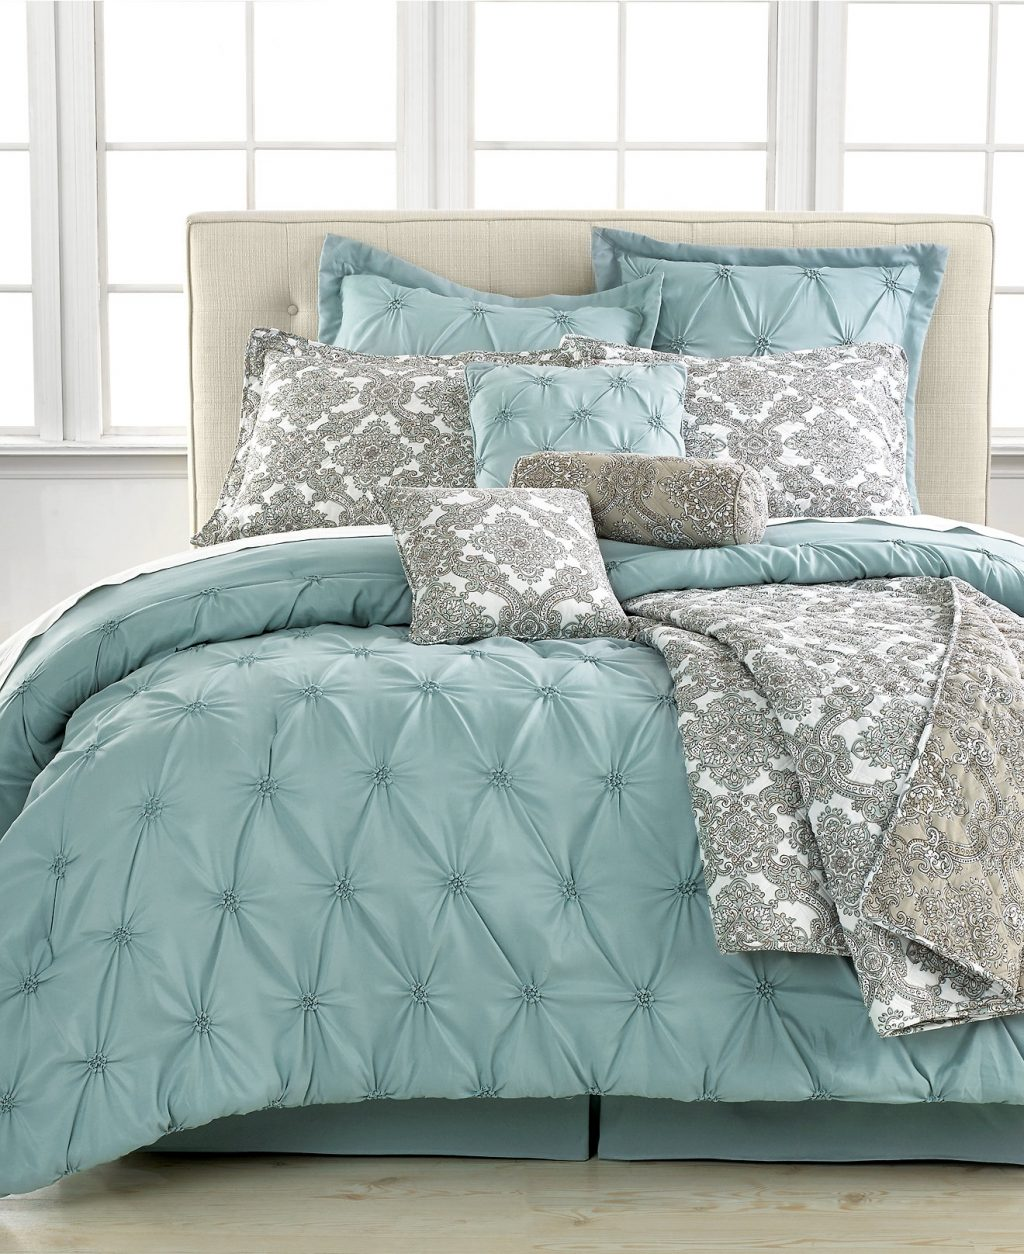 Fascinating Cheap Bed Comforters Bedroom Sets For Queen Comforter On